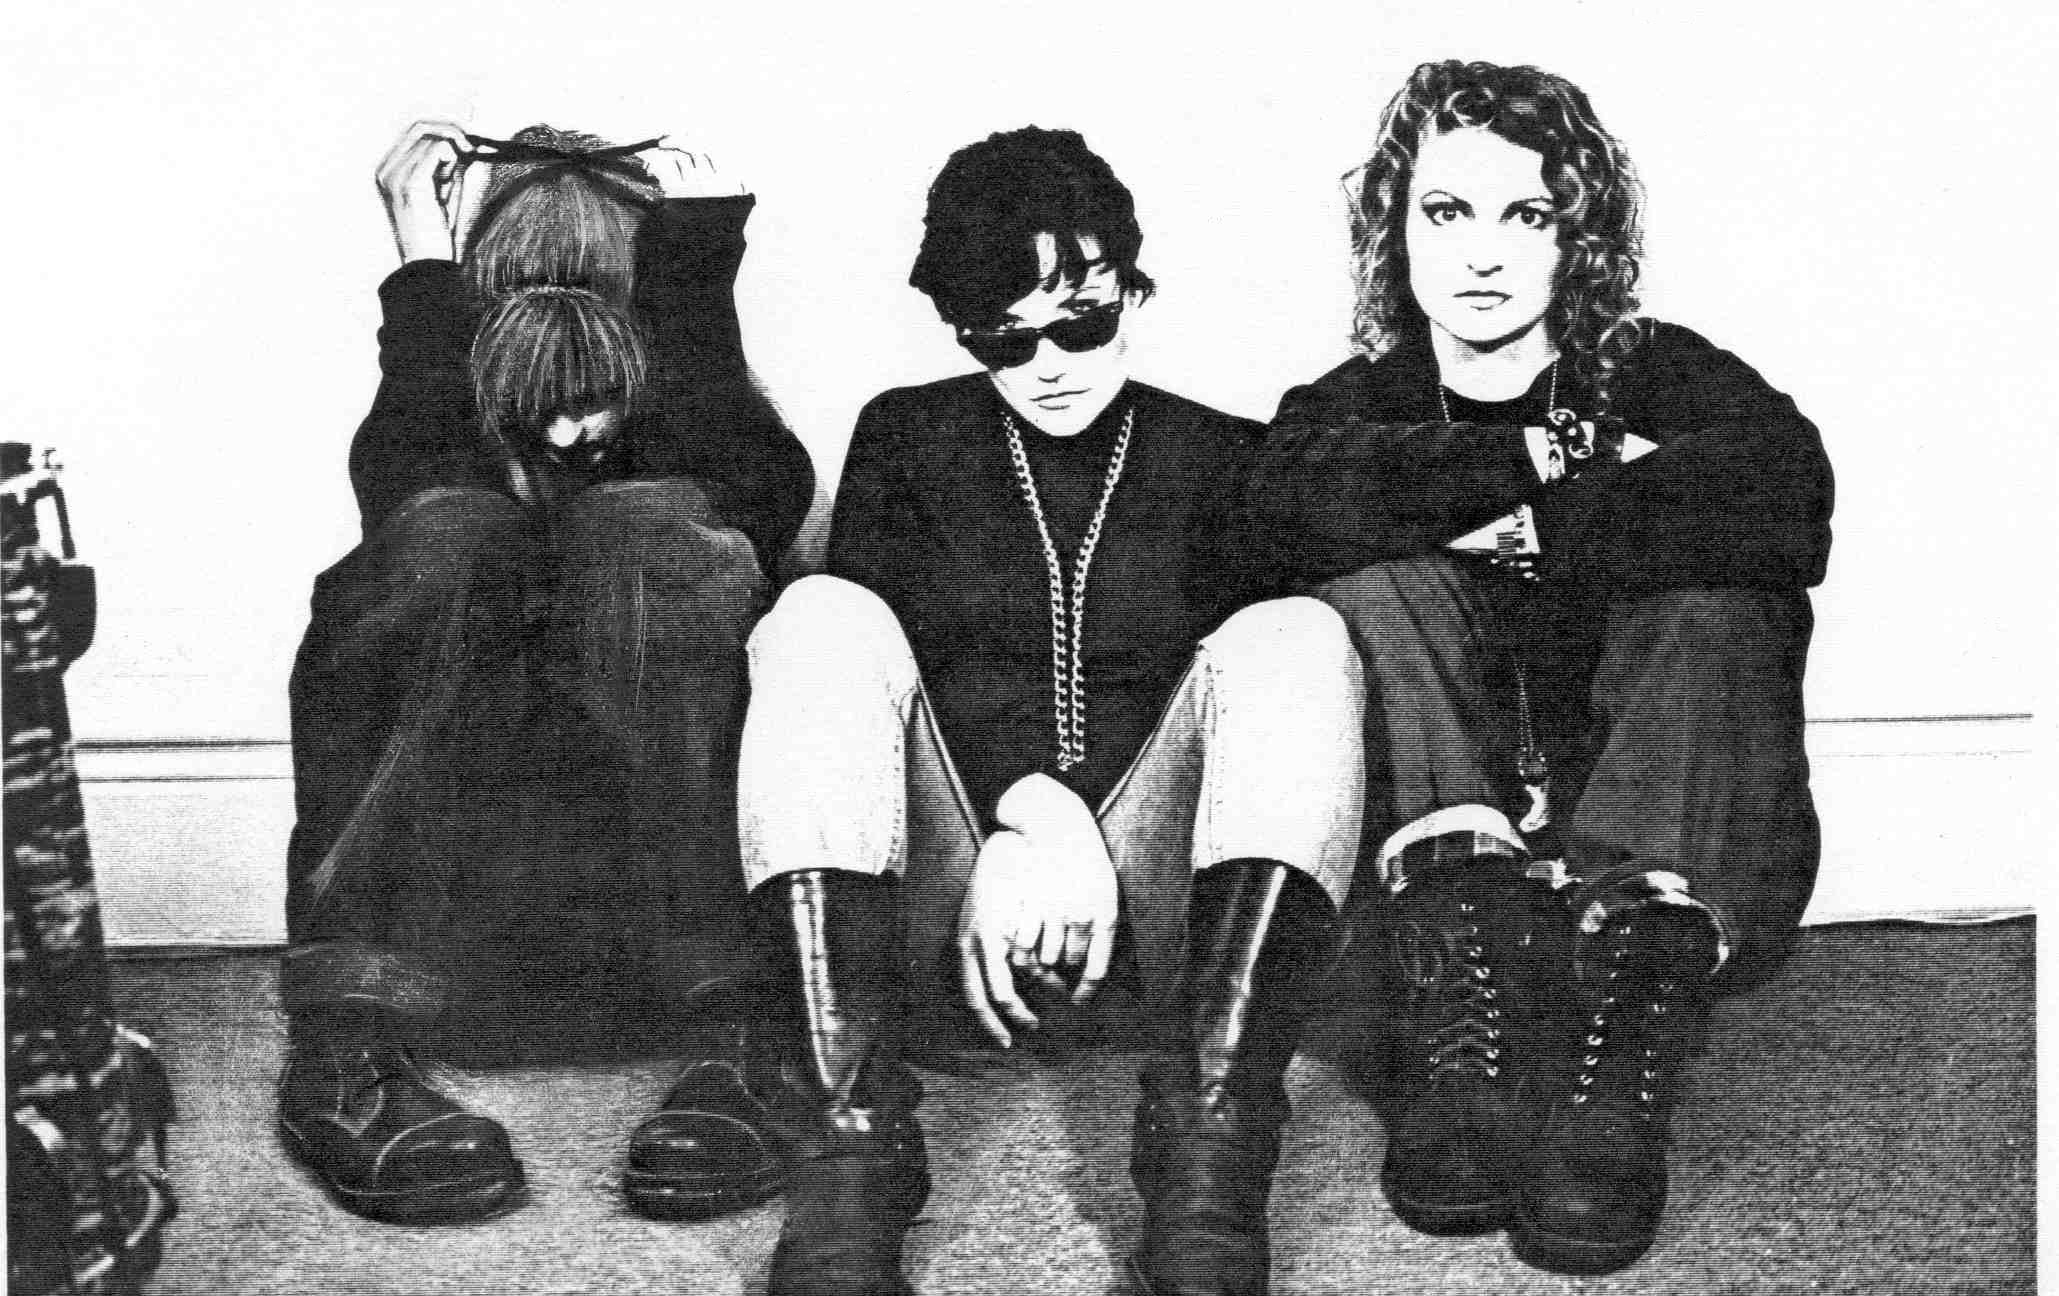 A black and white photo of three women seated against a wall. The woman on the left hand side has her head down and is playing with a ribbon in her hair. The woman in the middle wears sunglasses and looks at the camera. The woman on the right has her arms crossed and resting on her knees.